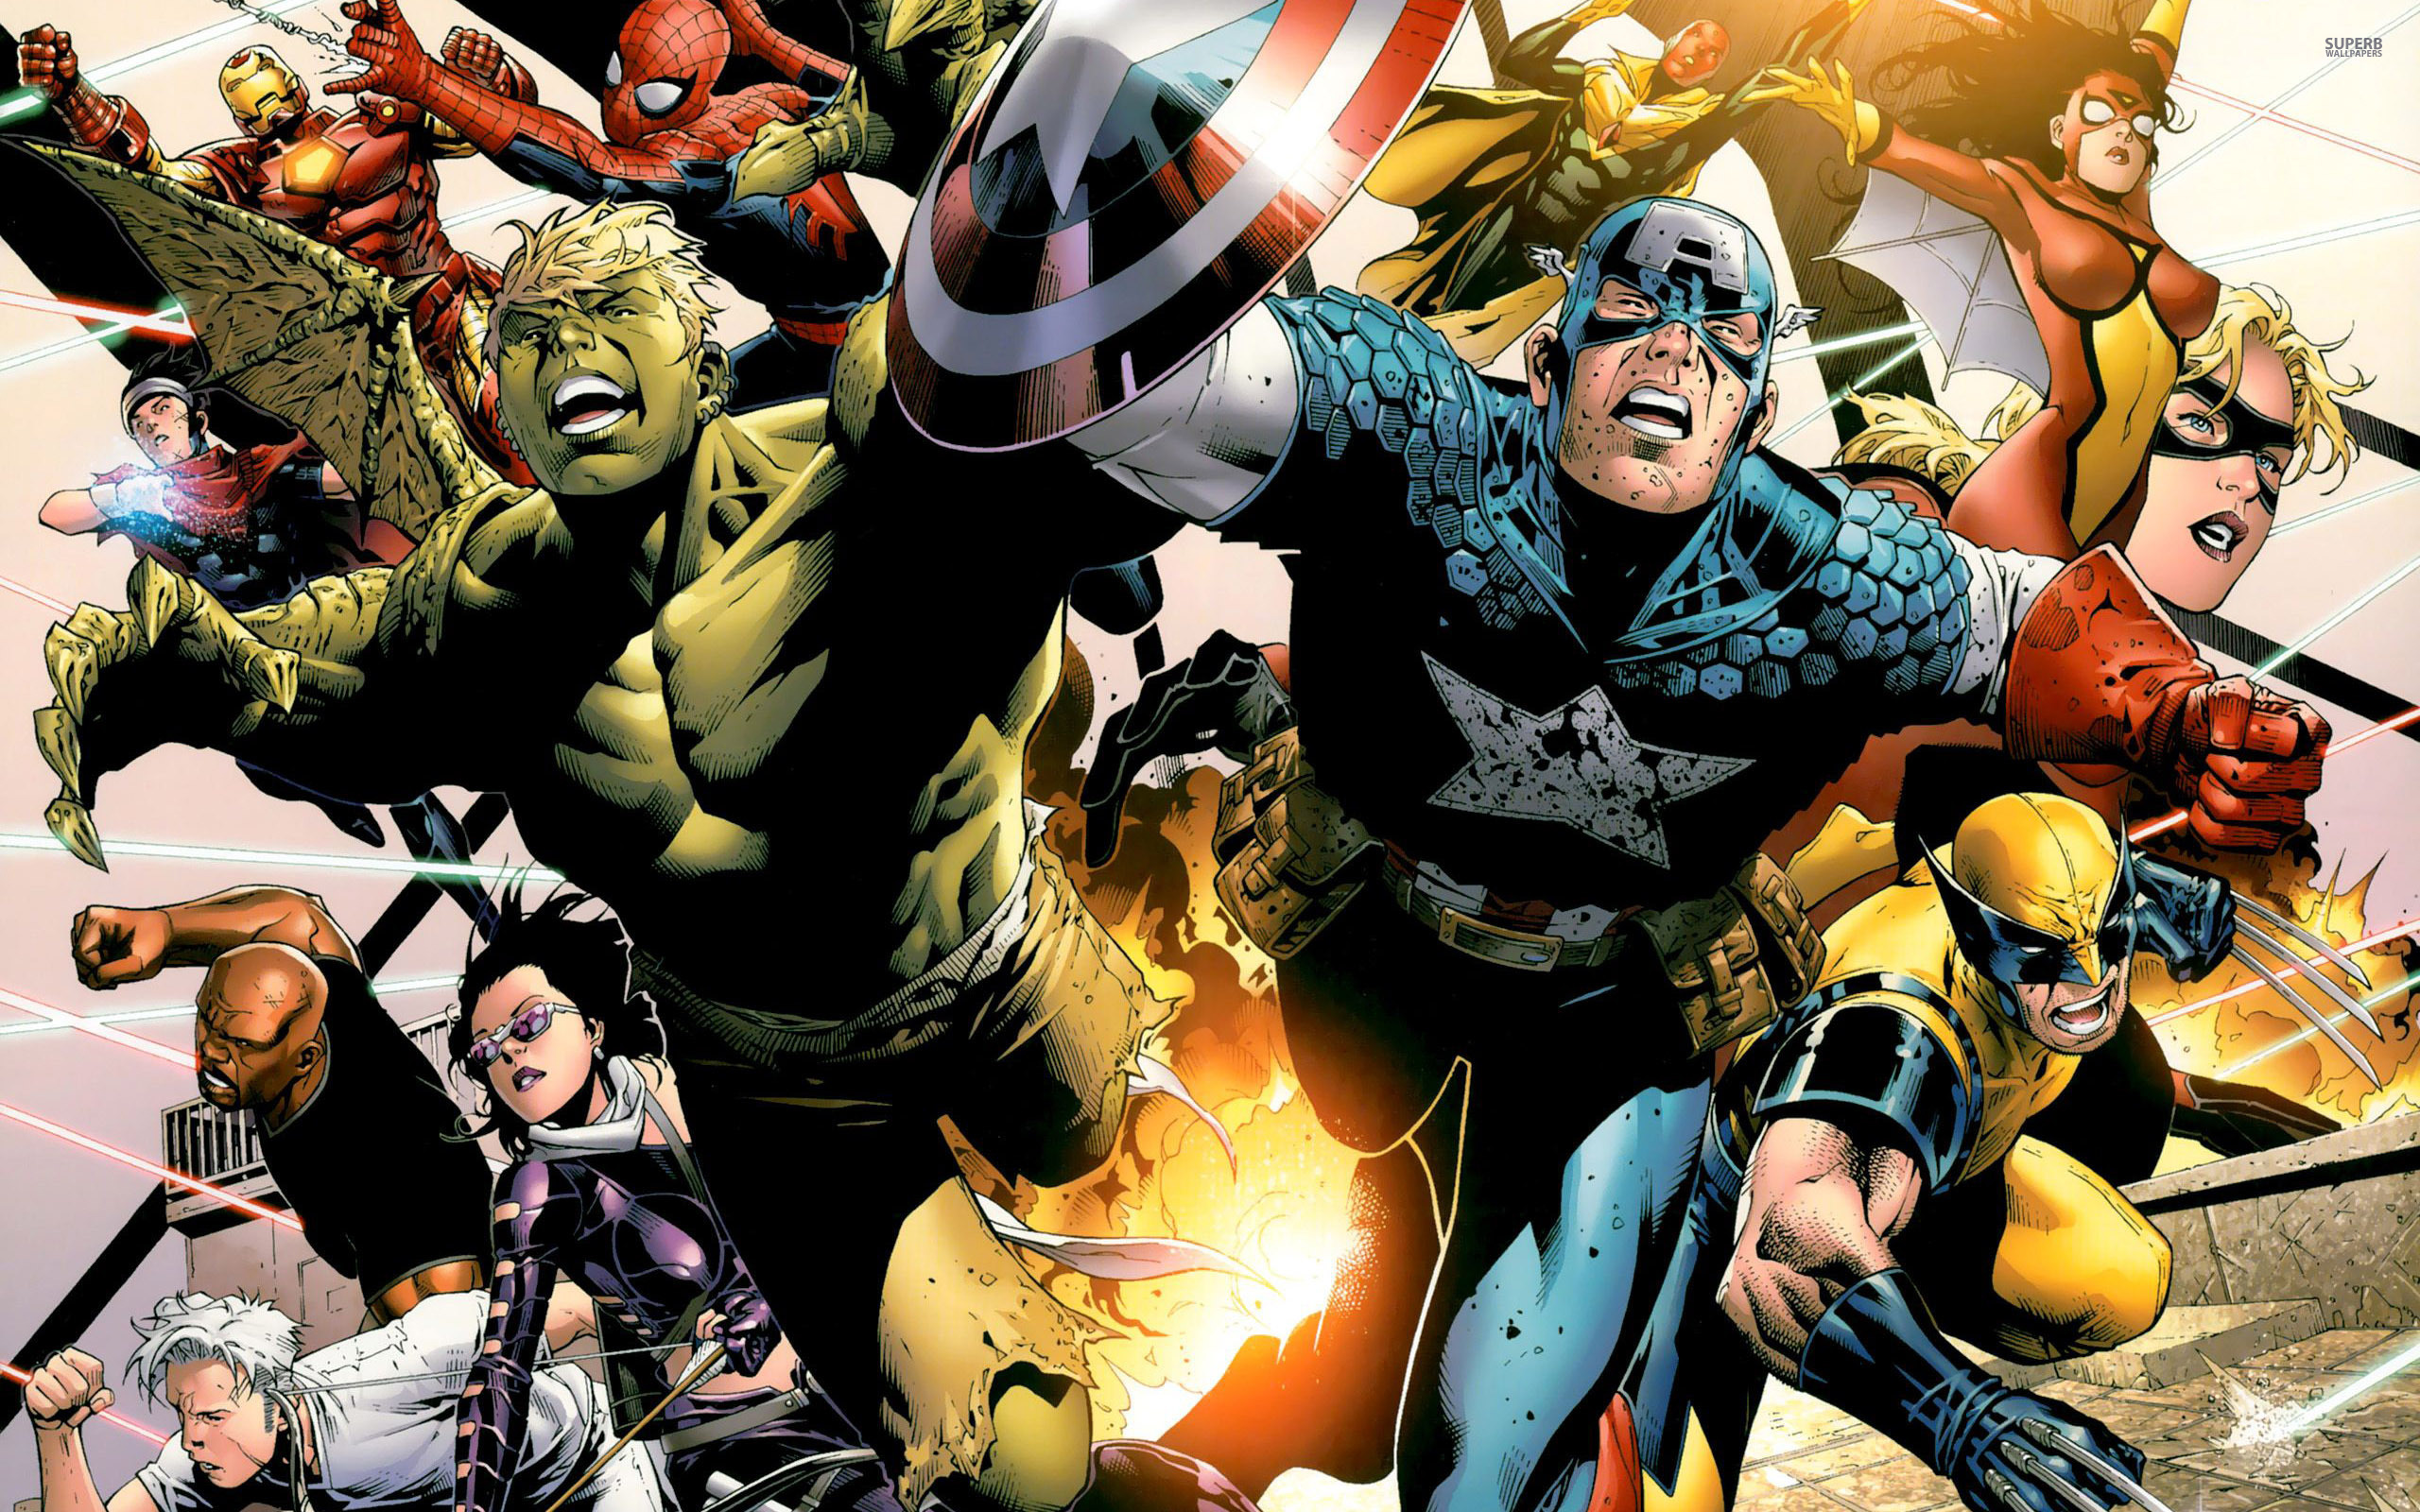 young-avengers-29857-2560x1600-2.jpg